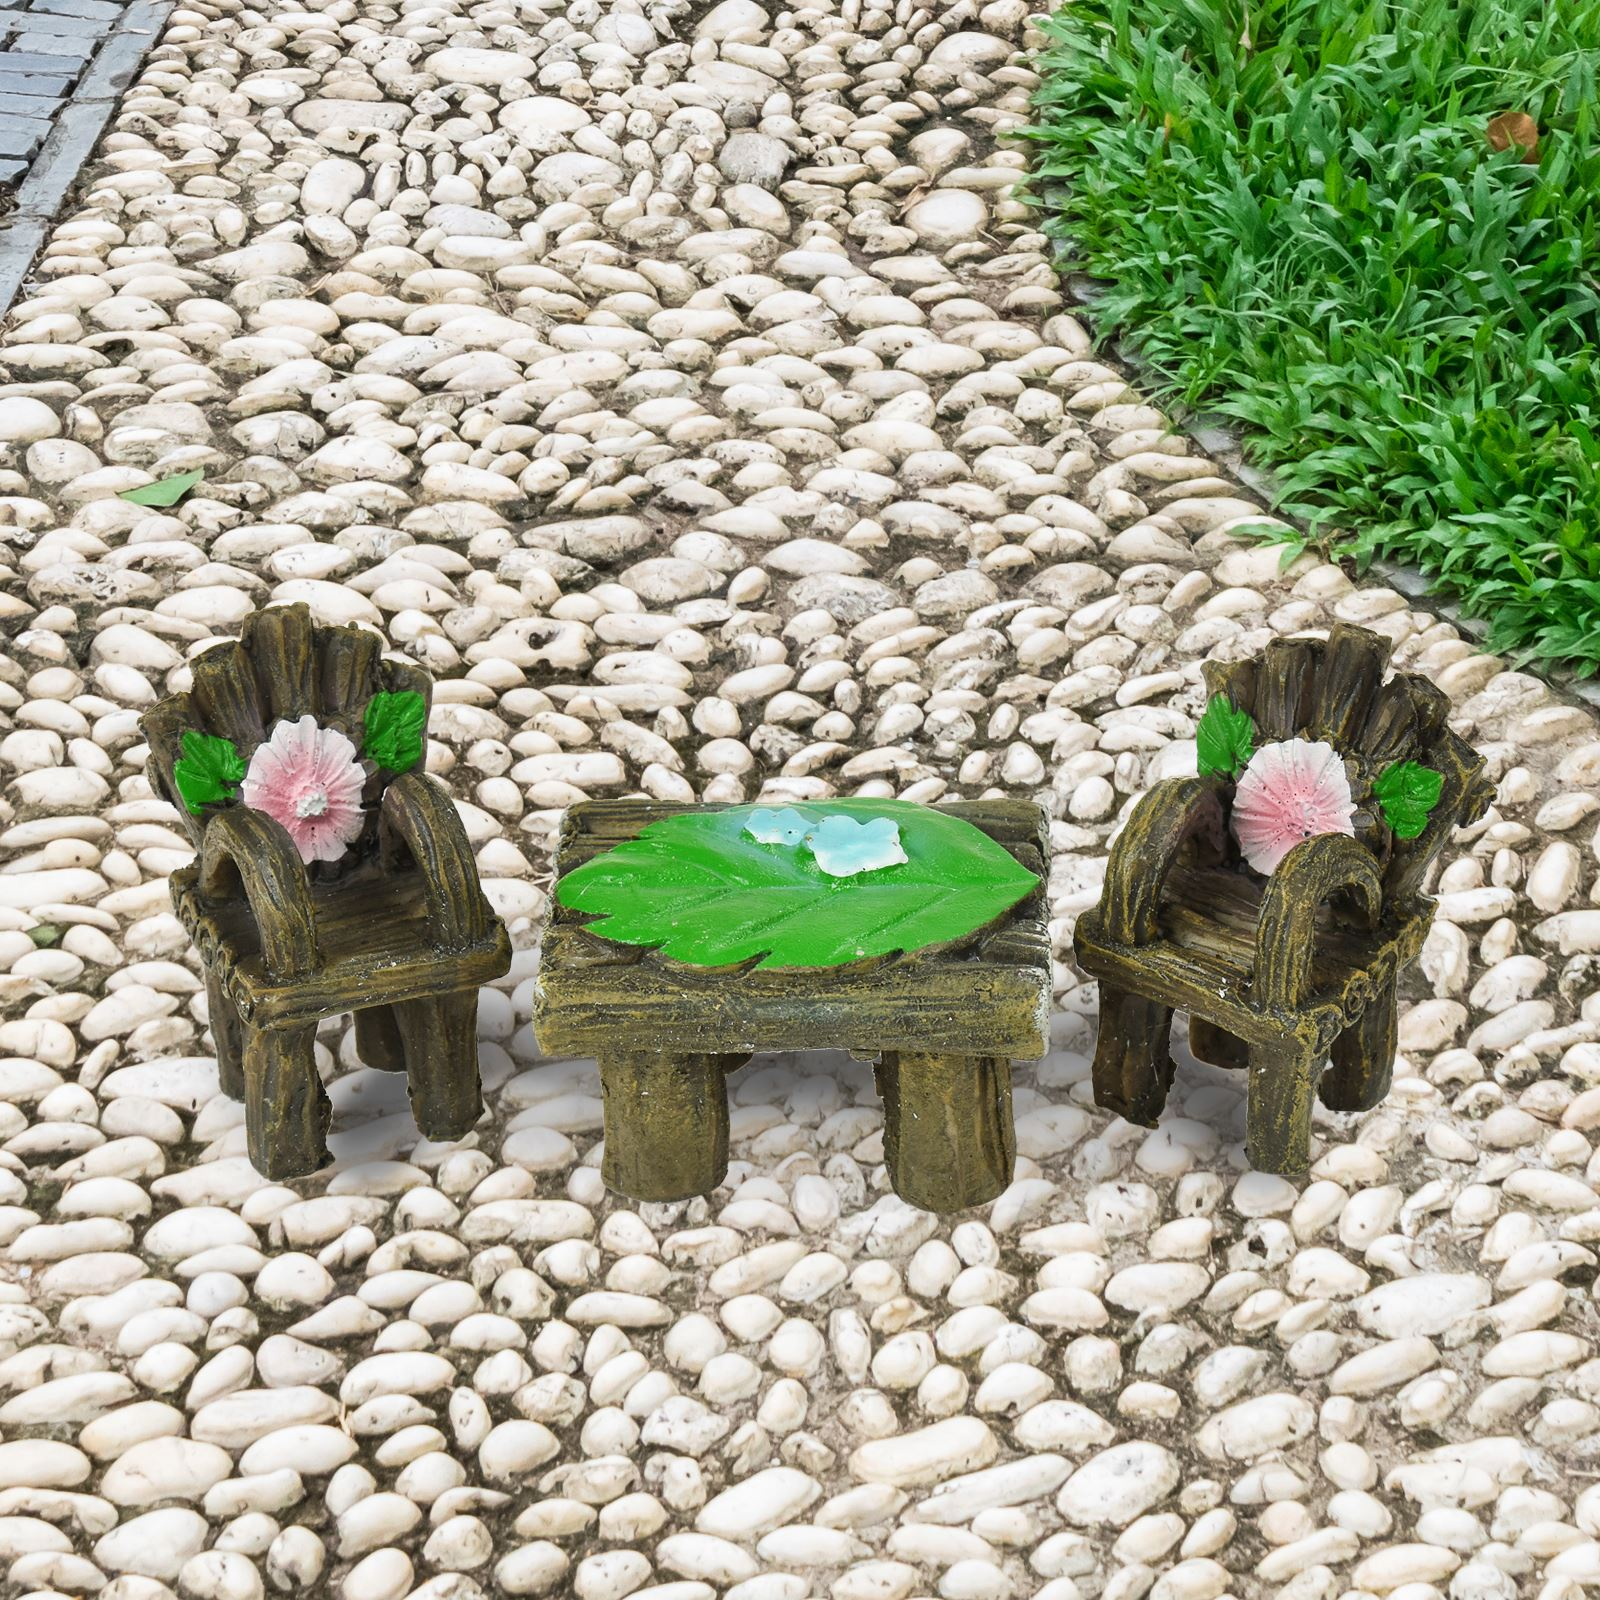 Miniature-Fairy-Enchanted-Garden-Home-Forest-Magical-Secret-Woodland-Fairies thumbnail 12